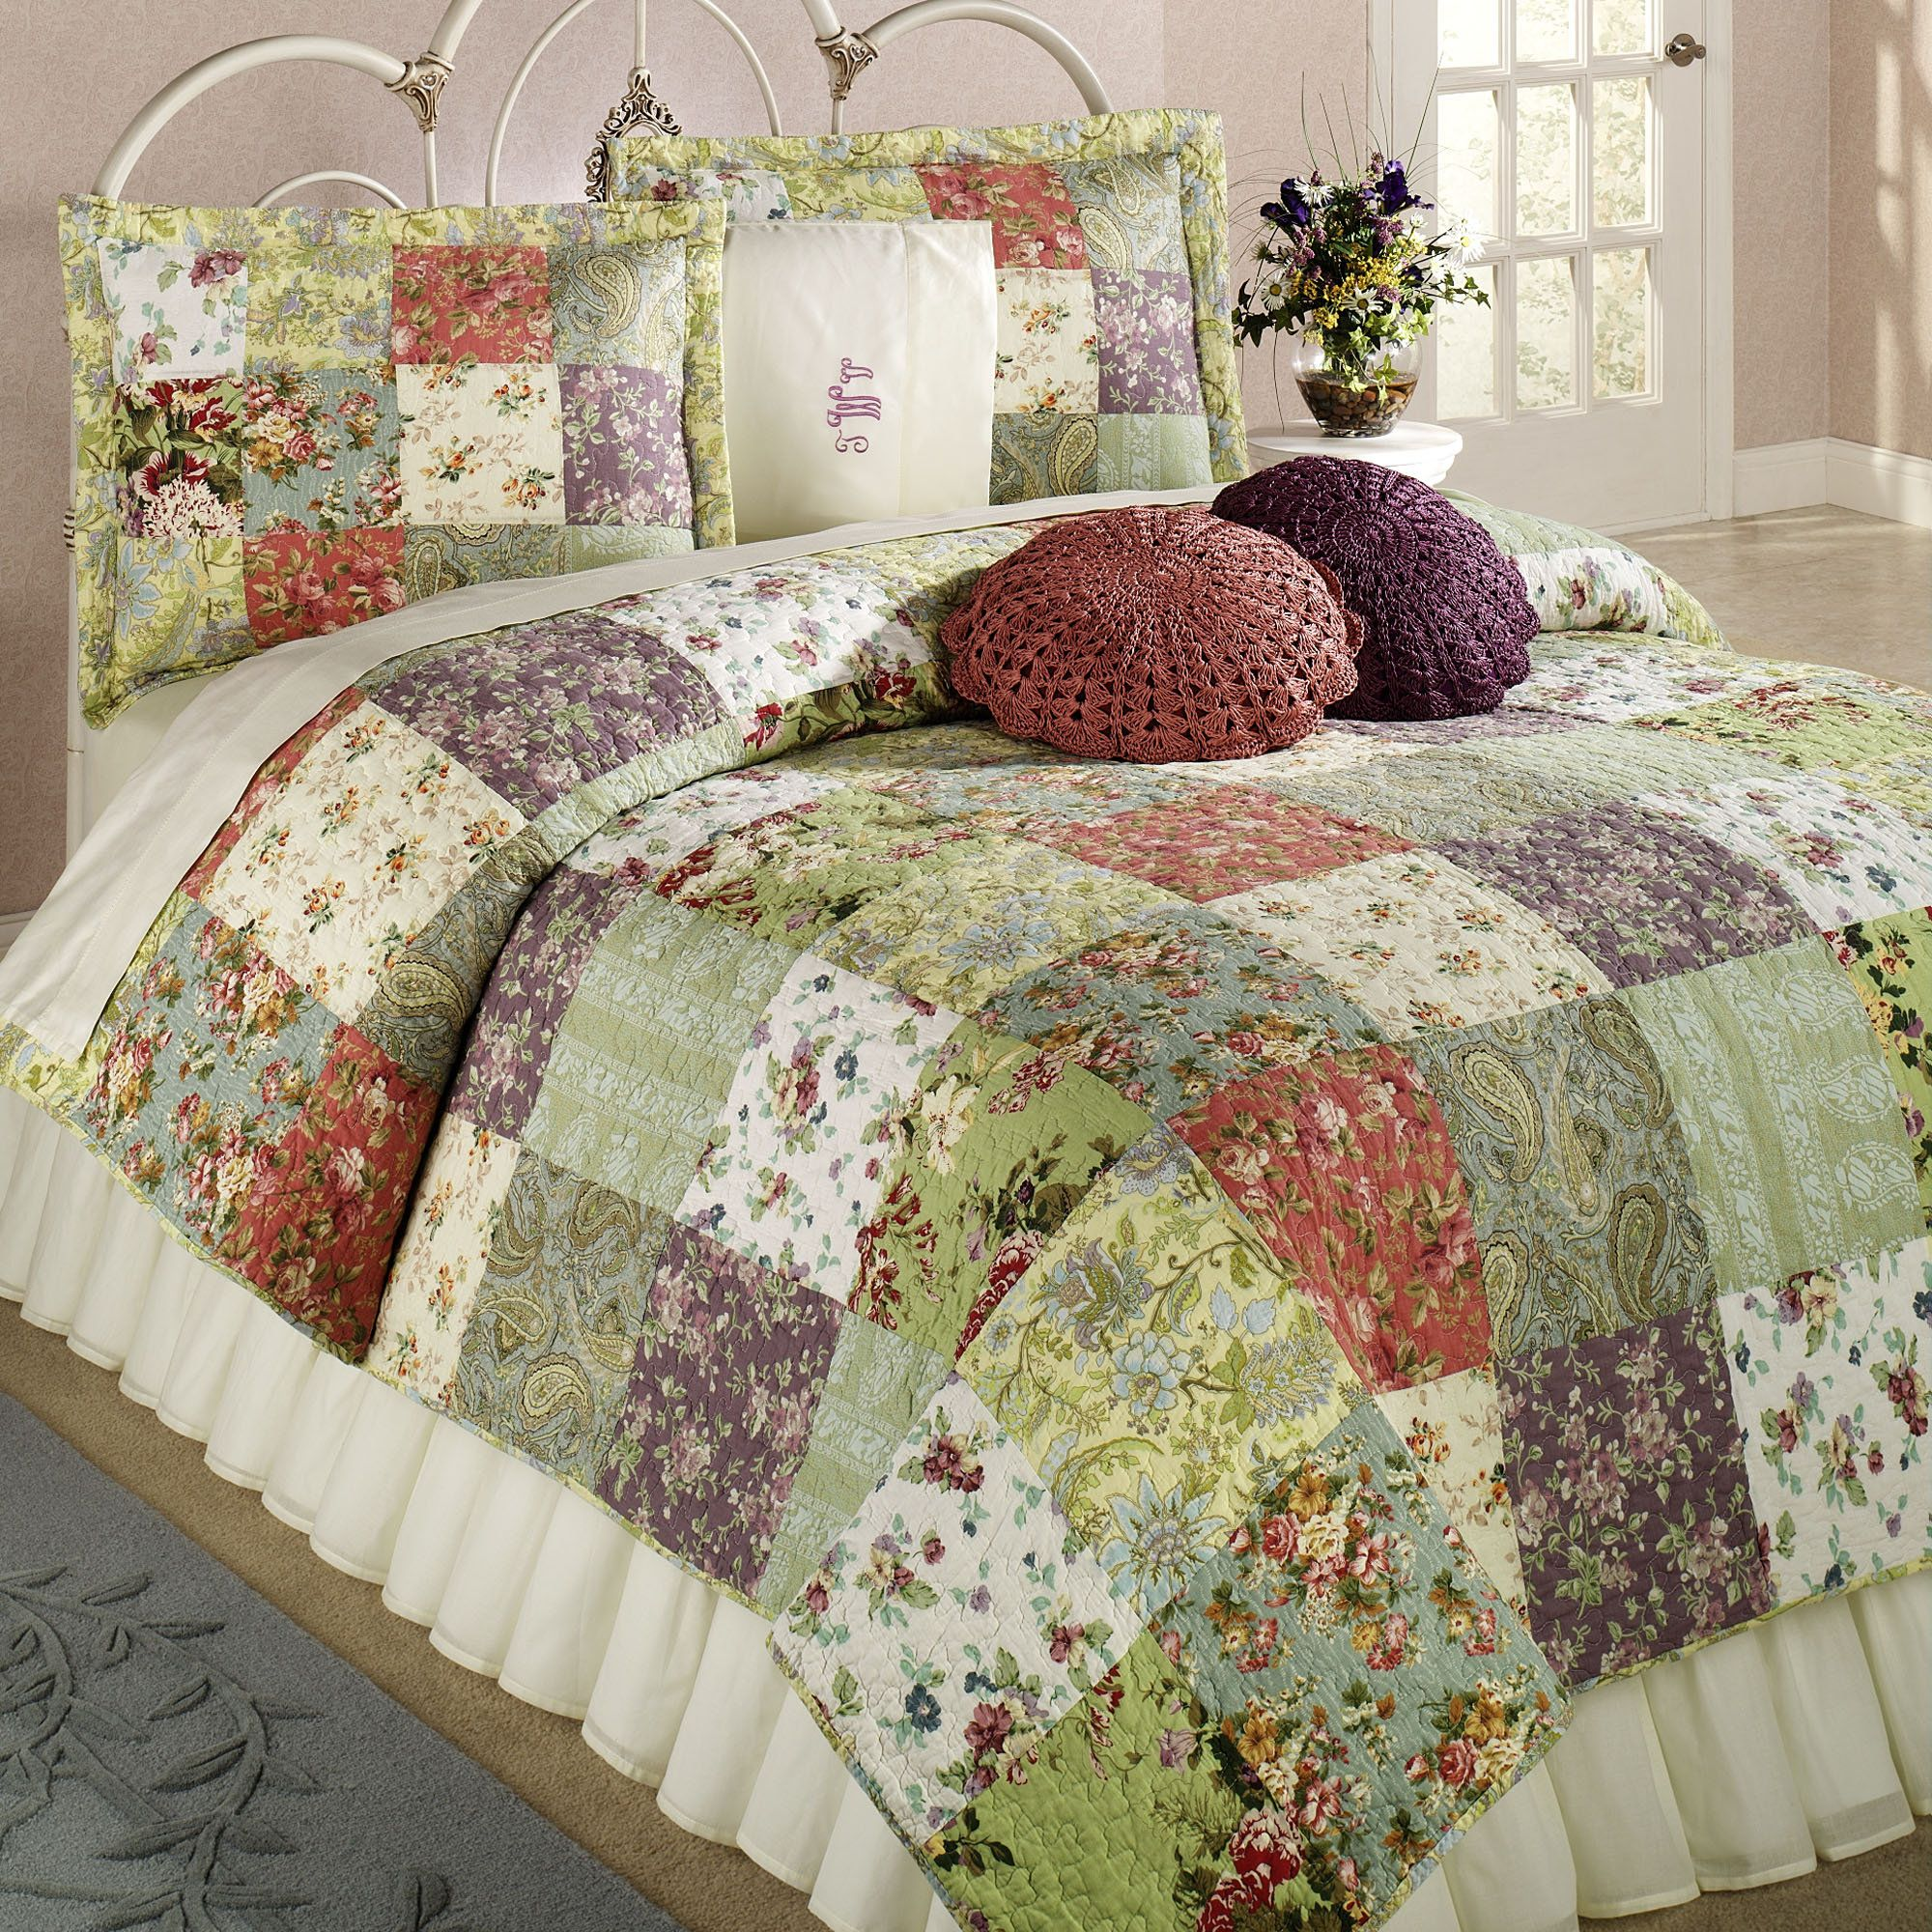 Bed sheet design patchwork - Blooming Prairie Cotton Patchwork Quilt Set Bedding